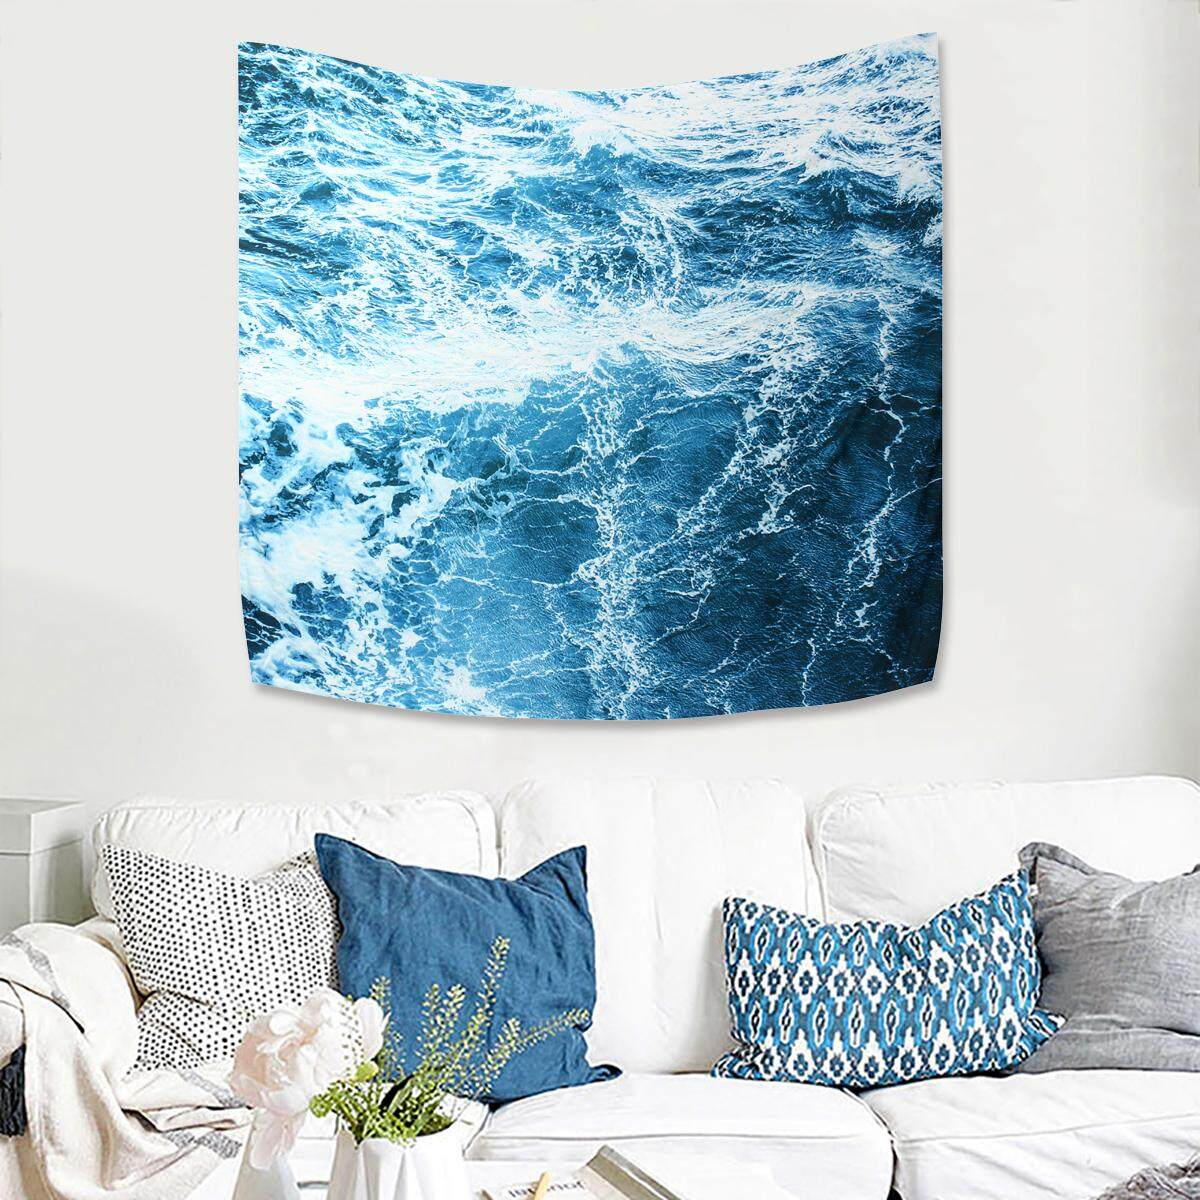 150cm x 130cm Art Wall Tapestry Ocean Wave Tapestry Wall Hanging Wall Tapestry Home Decoration - intl